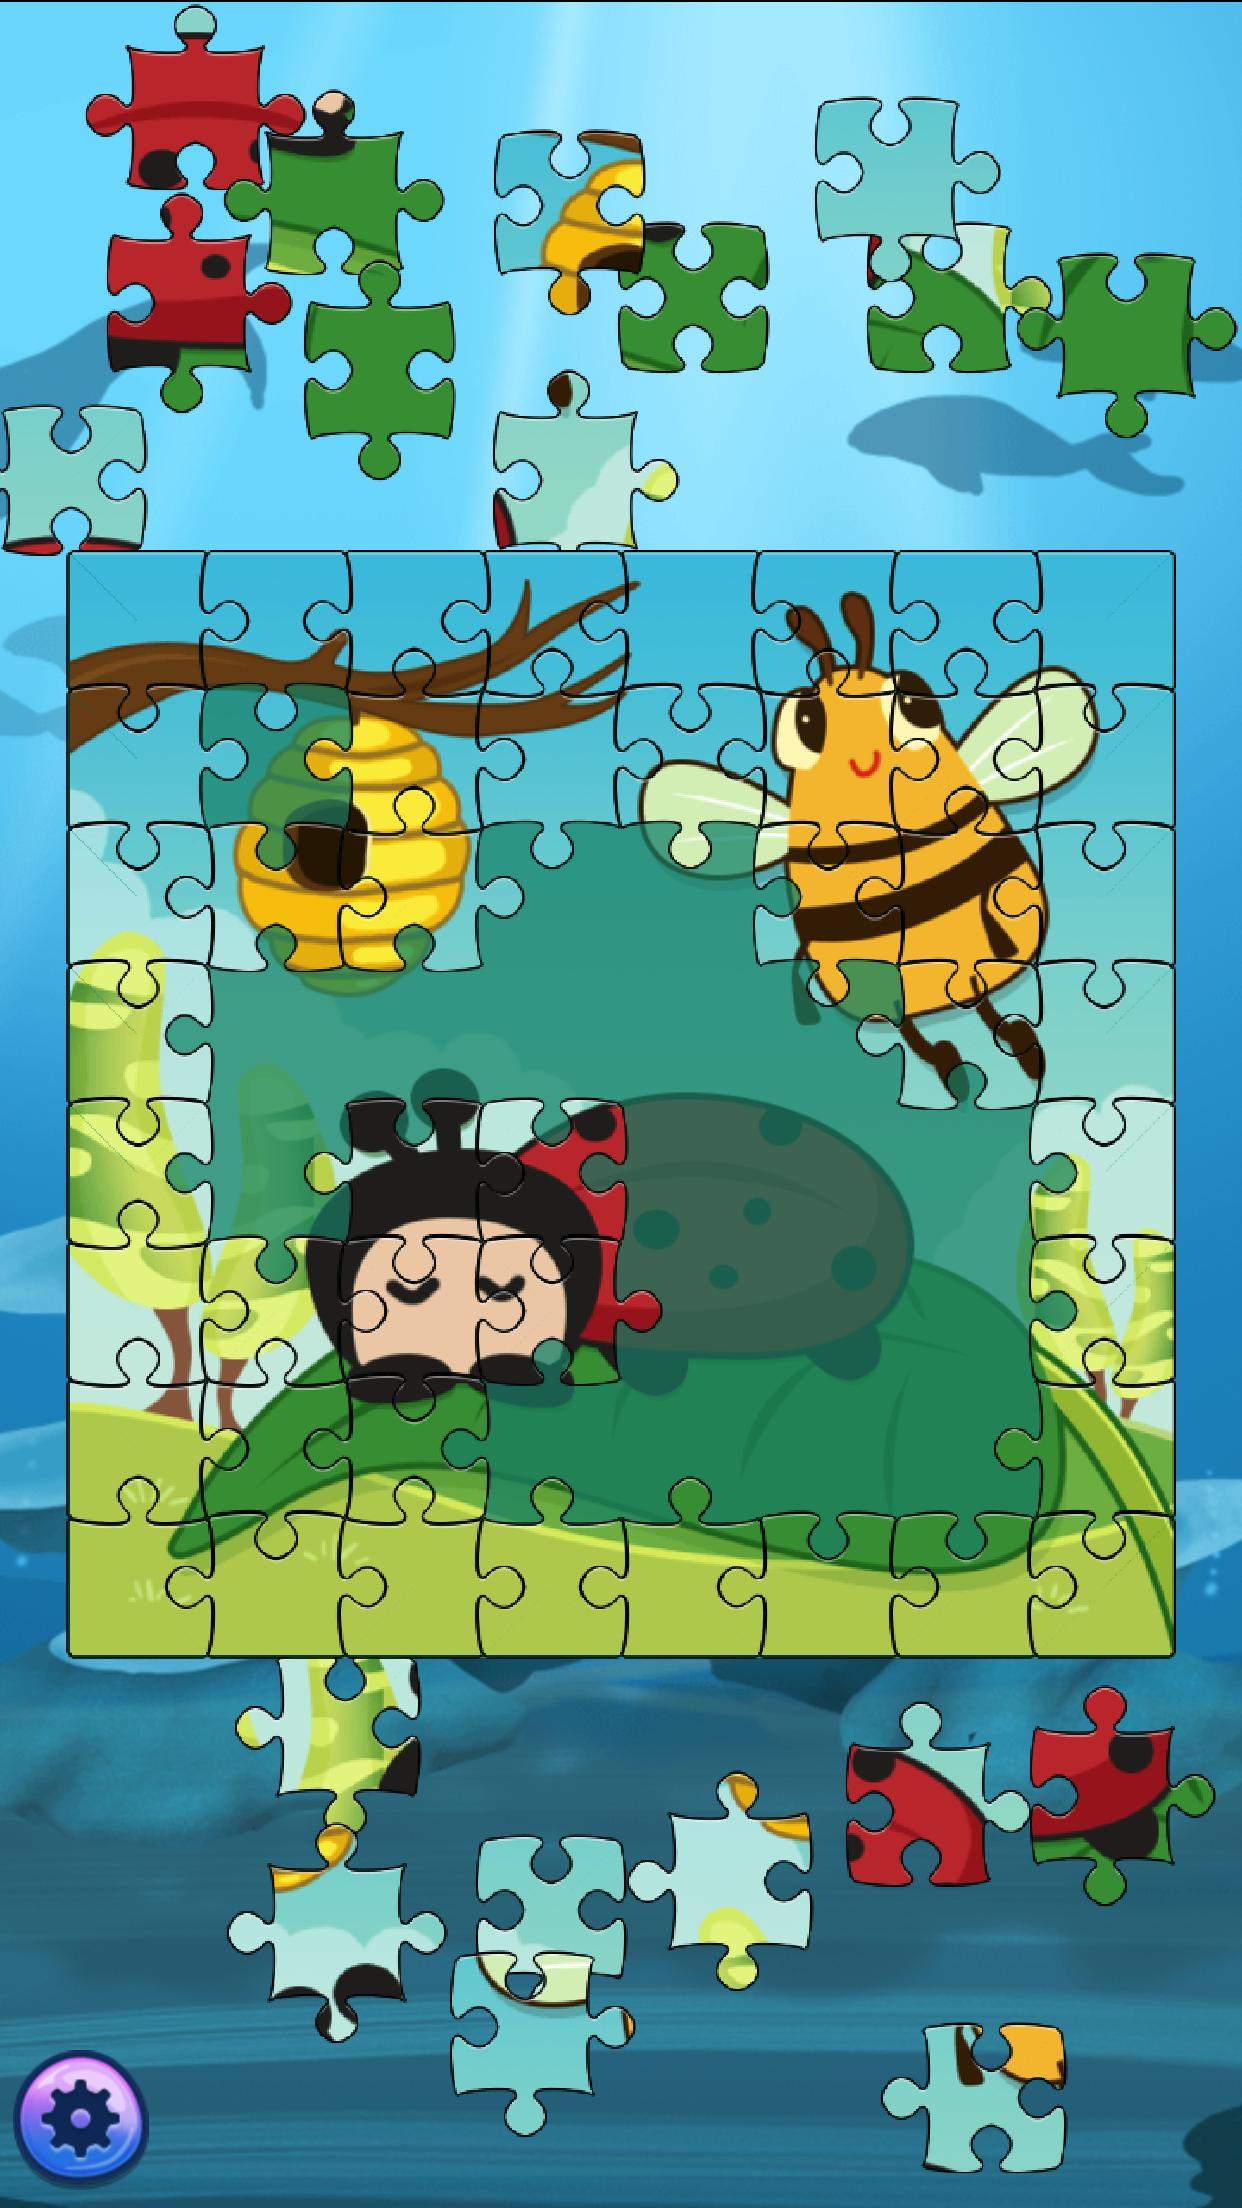 The Mystic Puzzland - Griddlers & Nonogram Puzzles 1.0.26 Screenshot 3